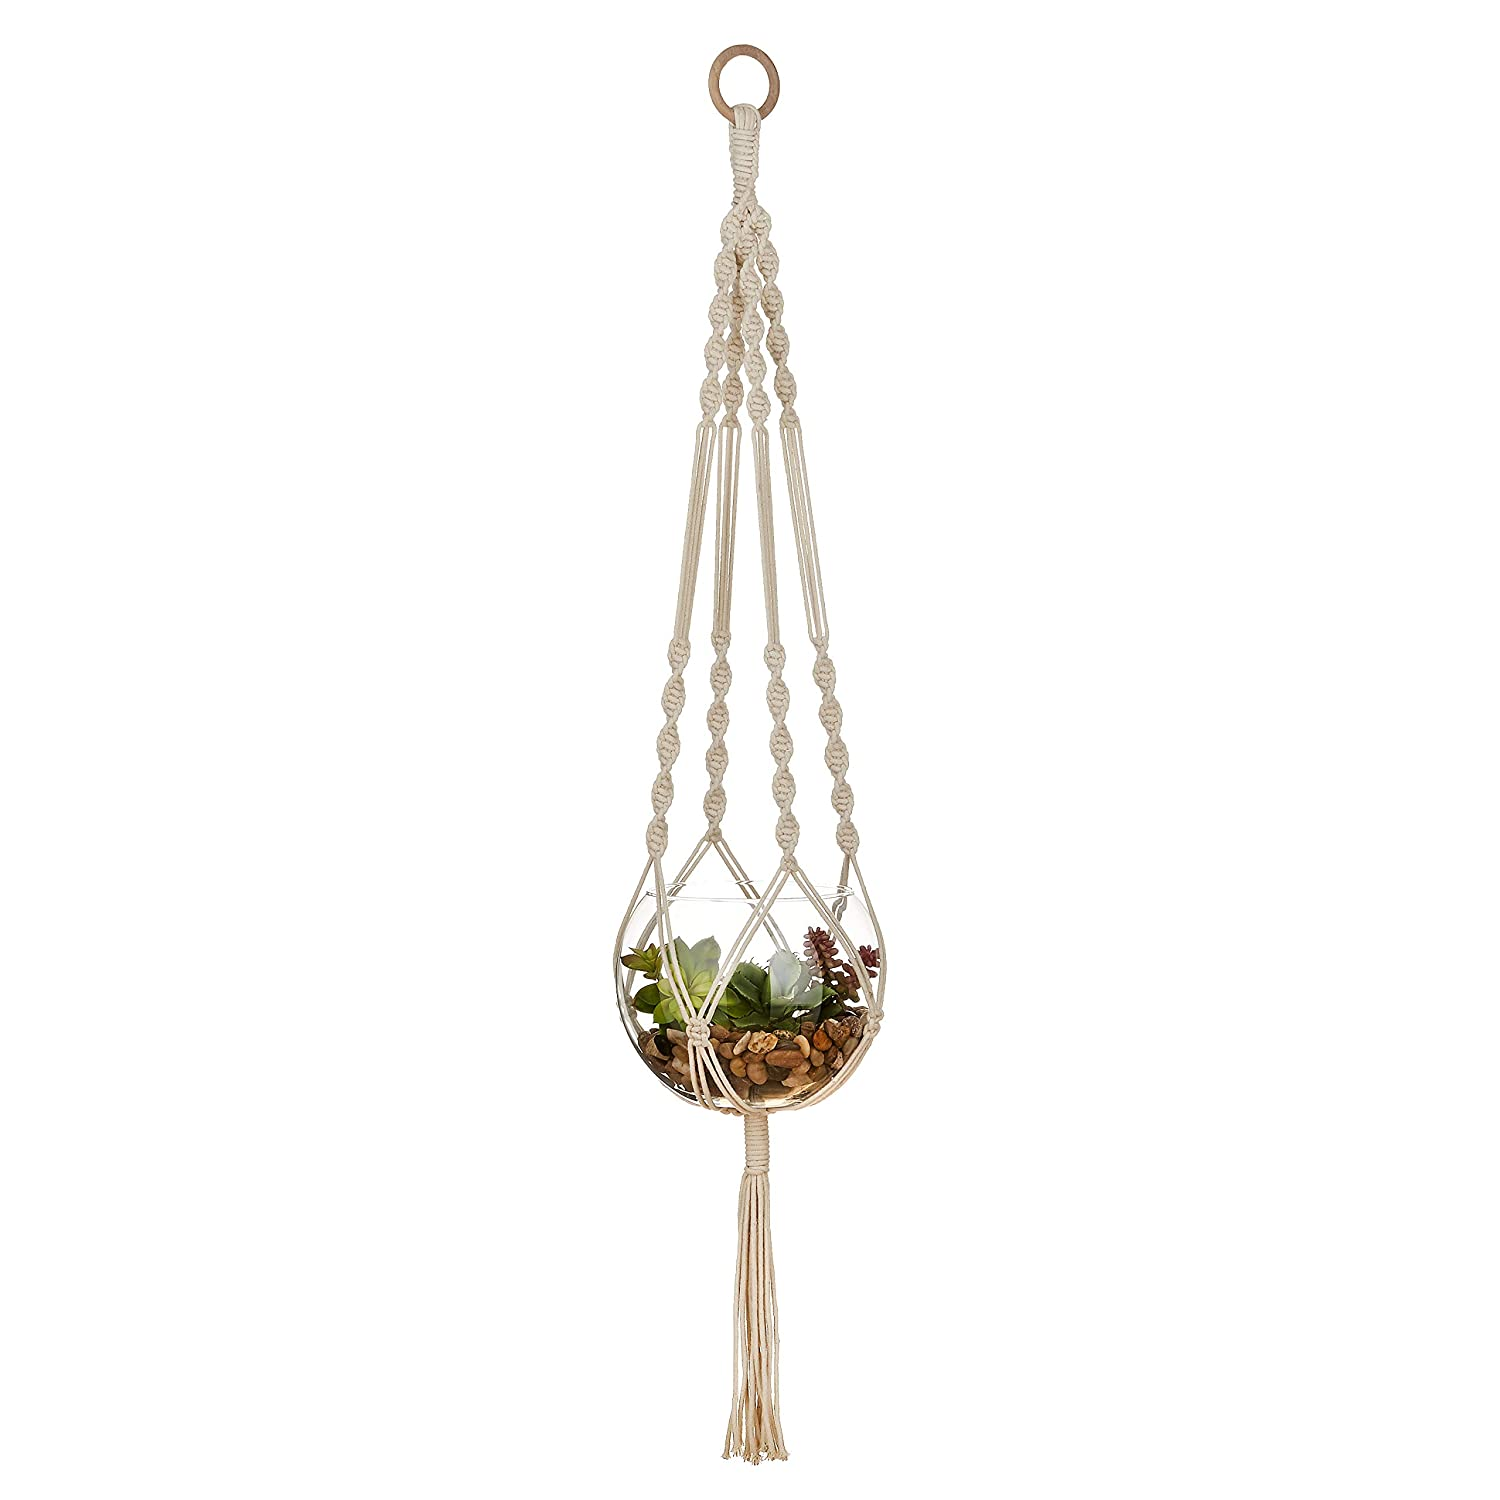 Macrame Plant Hangers, Hanging Basket, Hanging Plant Holder, Bohemian Decor, Plant Pots Indoor, Hanging planters for Indoor Plants, Natural Cotton, Indoor Planter, Handmade Outdoor Plant Hangers